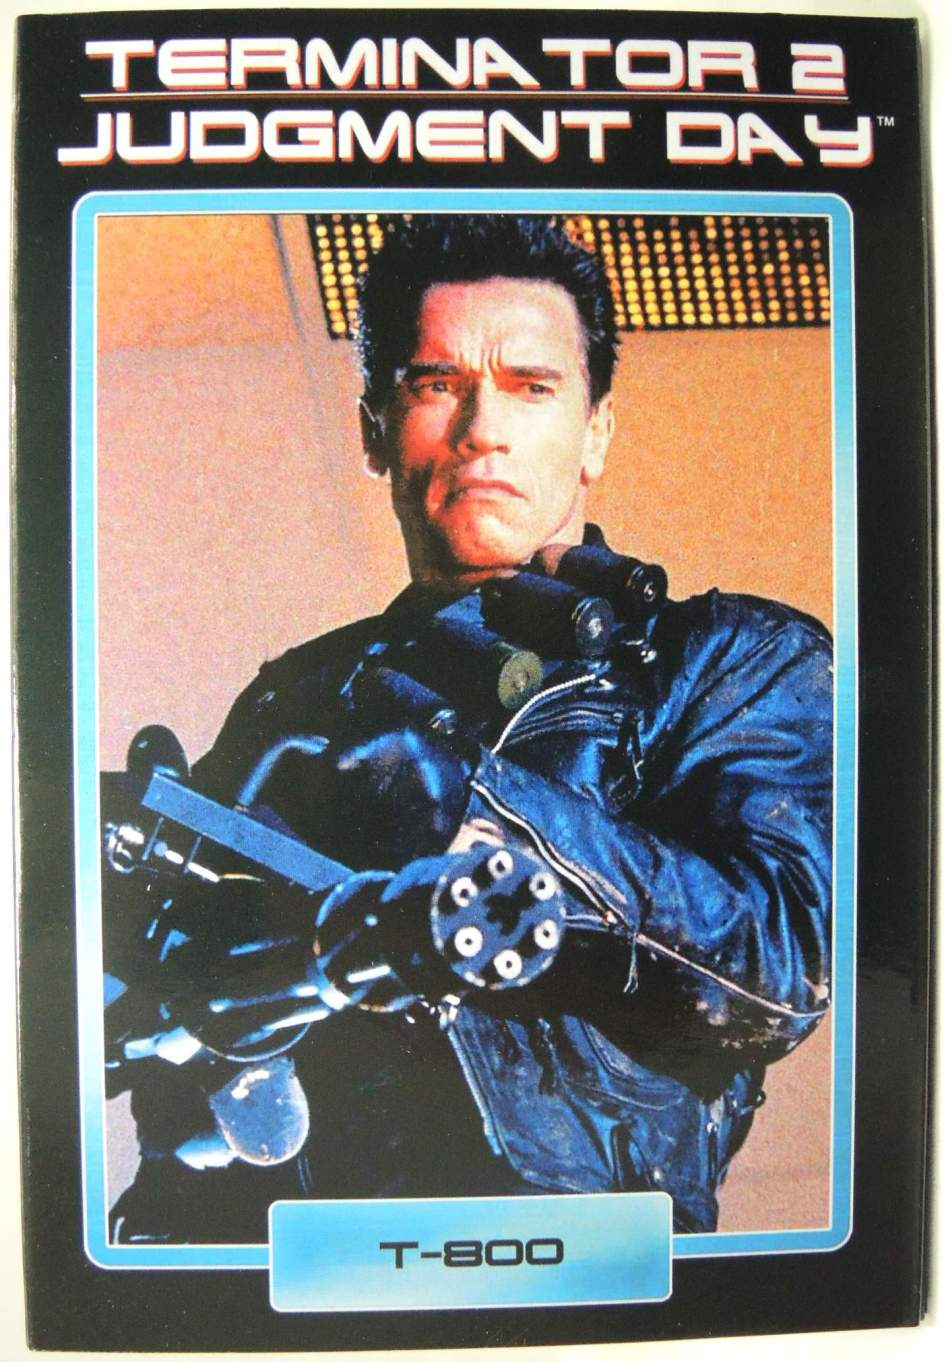 NECA Terminator Ultimate Figure - Terminator T-800 NECA, Terminator, Action Figures, 2015, scifi, movie